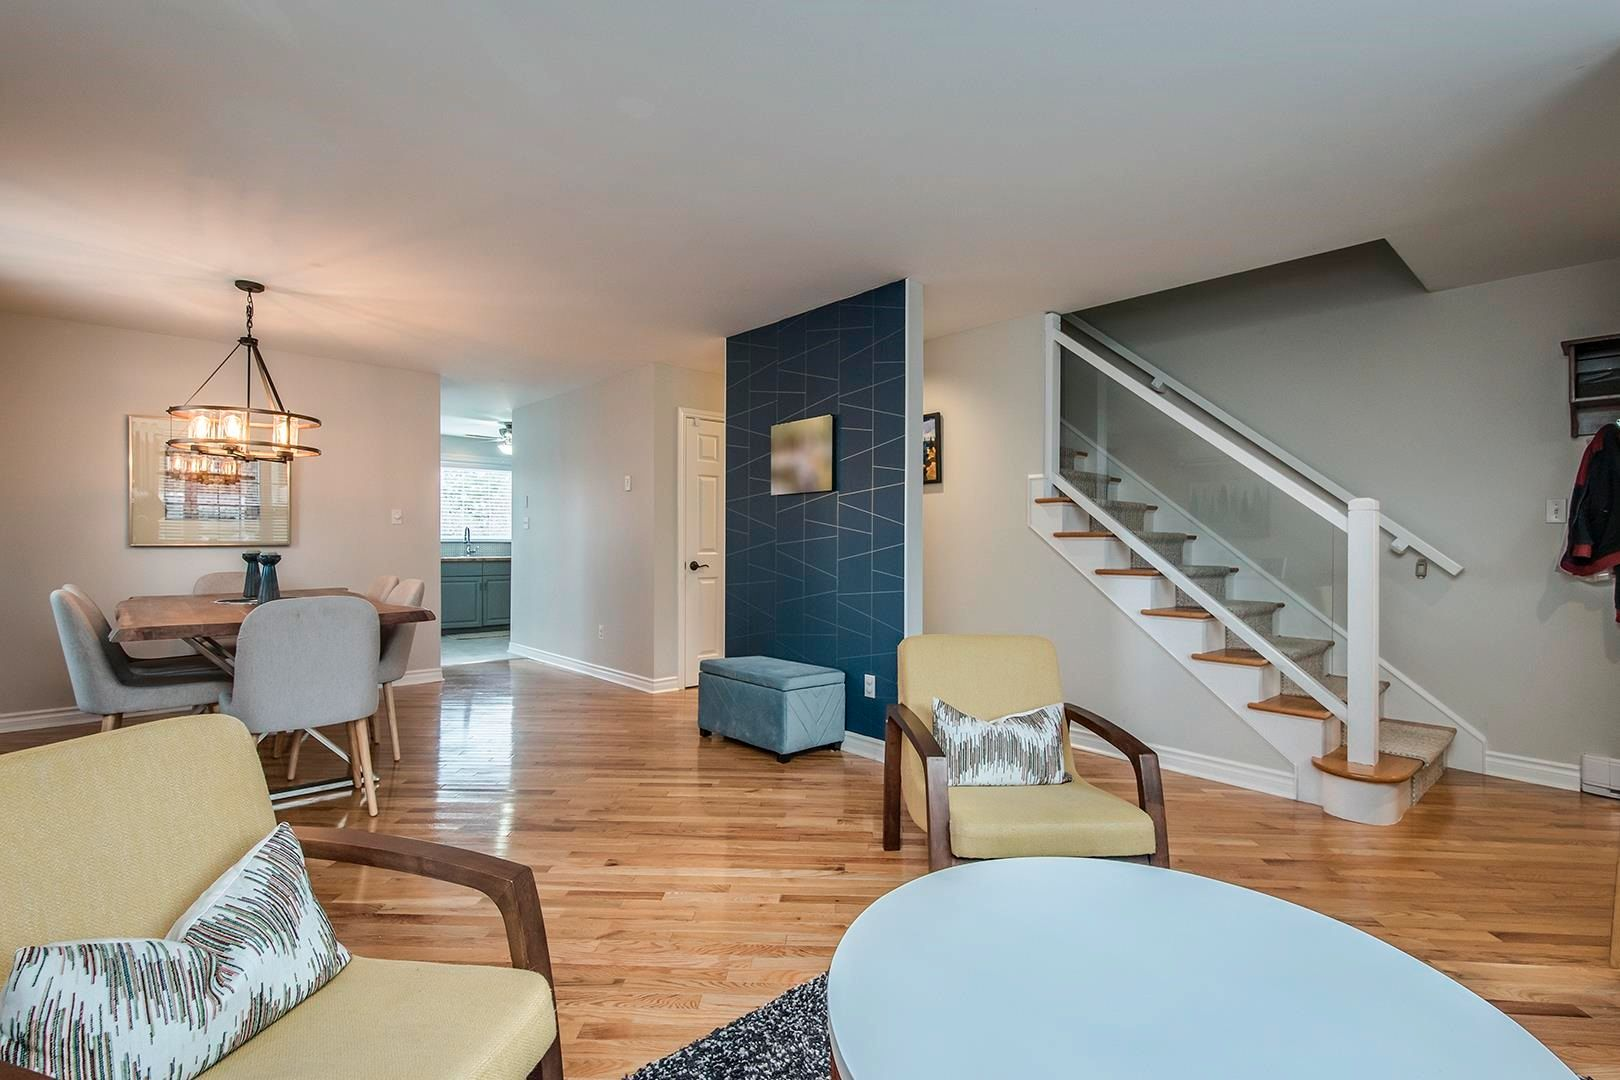 Photo 5: Photos: 64 Roy Crescent in Bedford: 20-Bedford Residential for sale (Halifax-Dartmouth)  : MLS®# 202110846